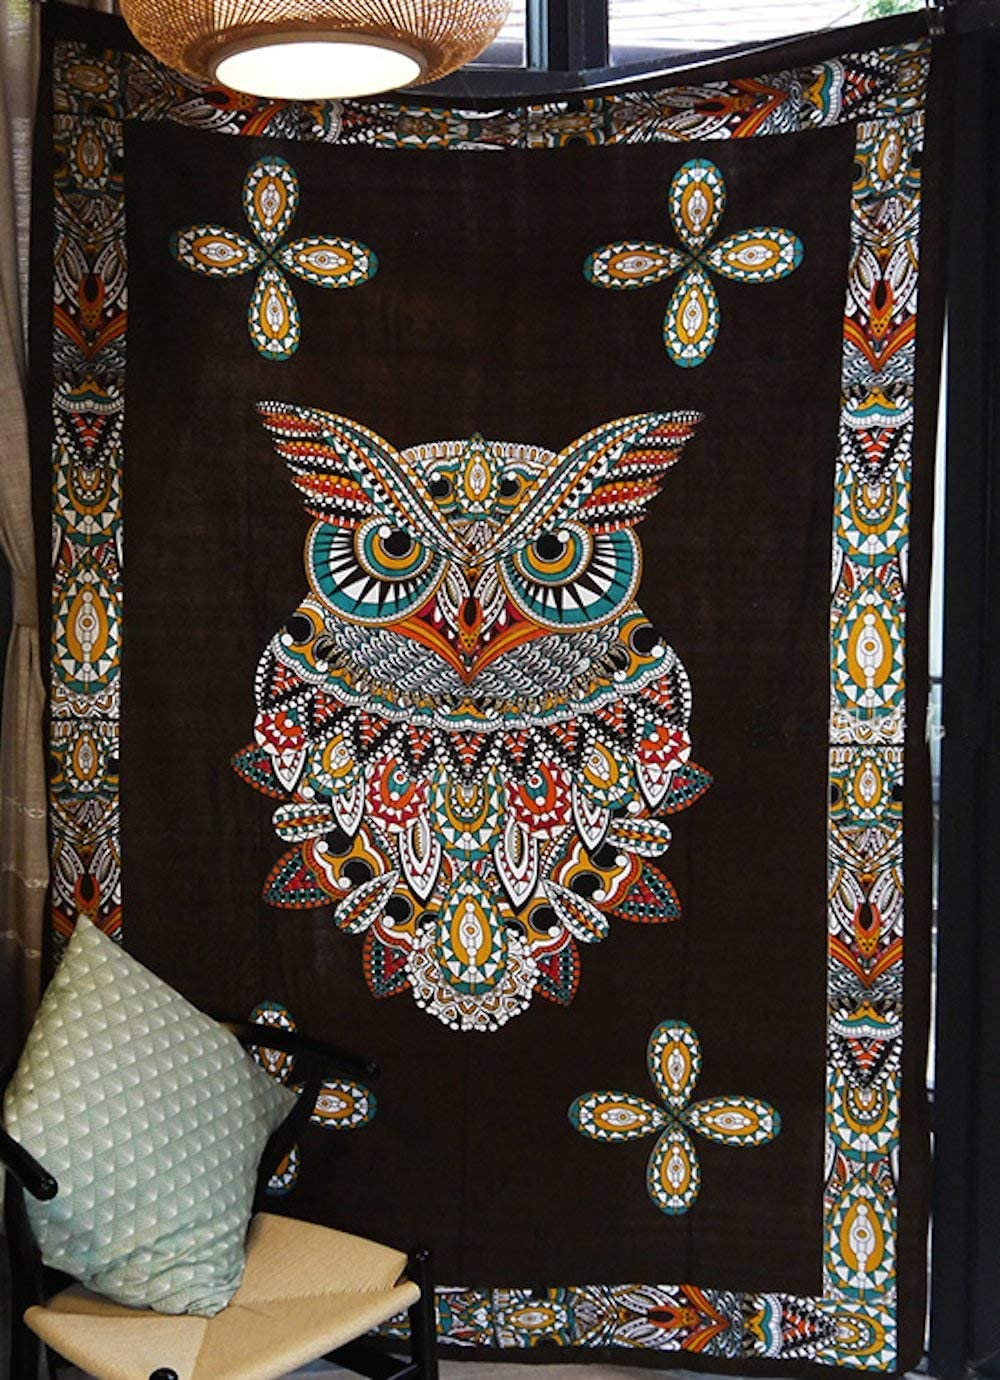 """Psychedelic Owl Tapestry Large Format Art Window Curtain Dorm Decor,60""""x 80"""""""